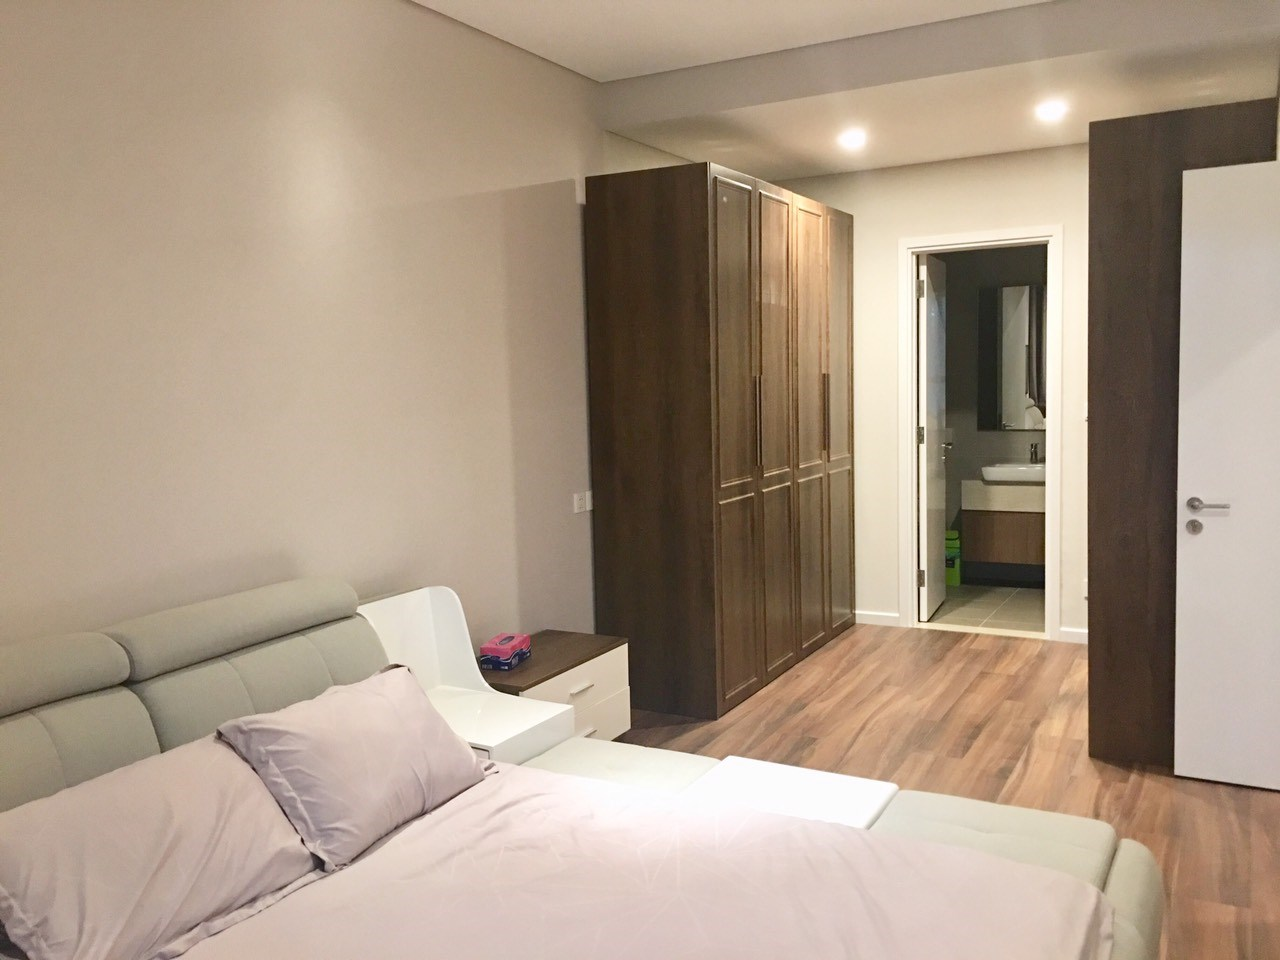 DI0075 - Diamond Island Apartment For Rent & Sale in Ho Chi Minh City - 3 bedroom